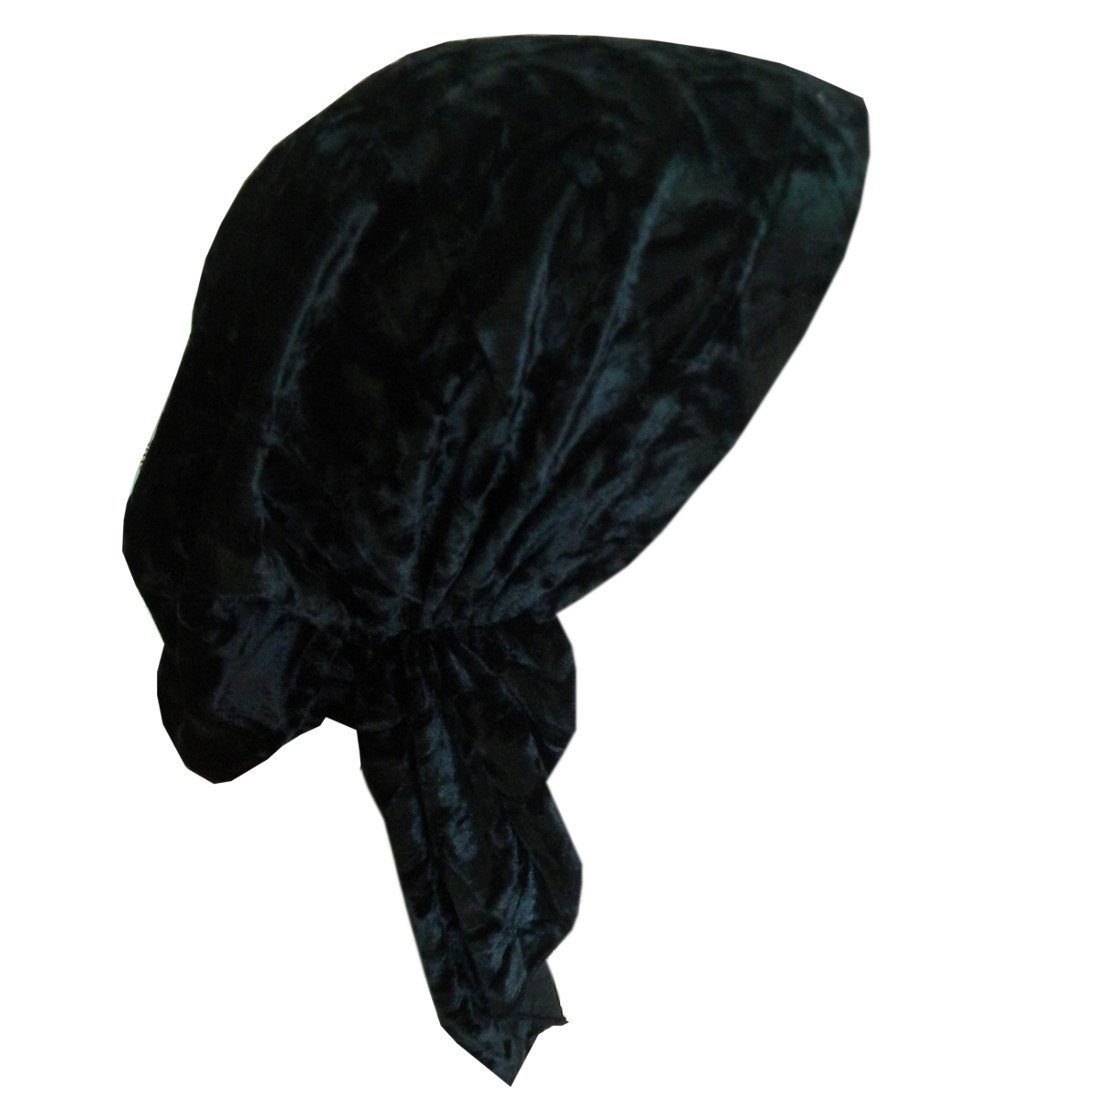 Velour Headscarf Chemo Head Wrap Pretied Bandana - Black LadyBug ptlb-velourshort-black